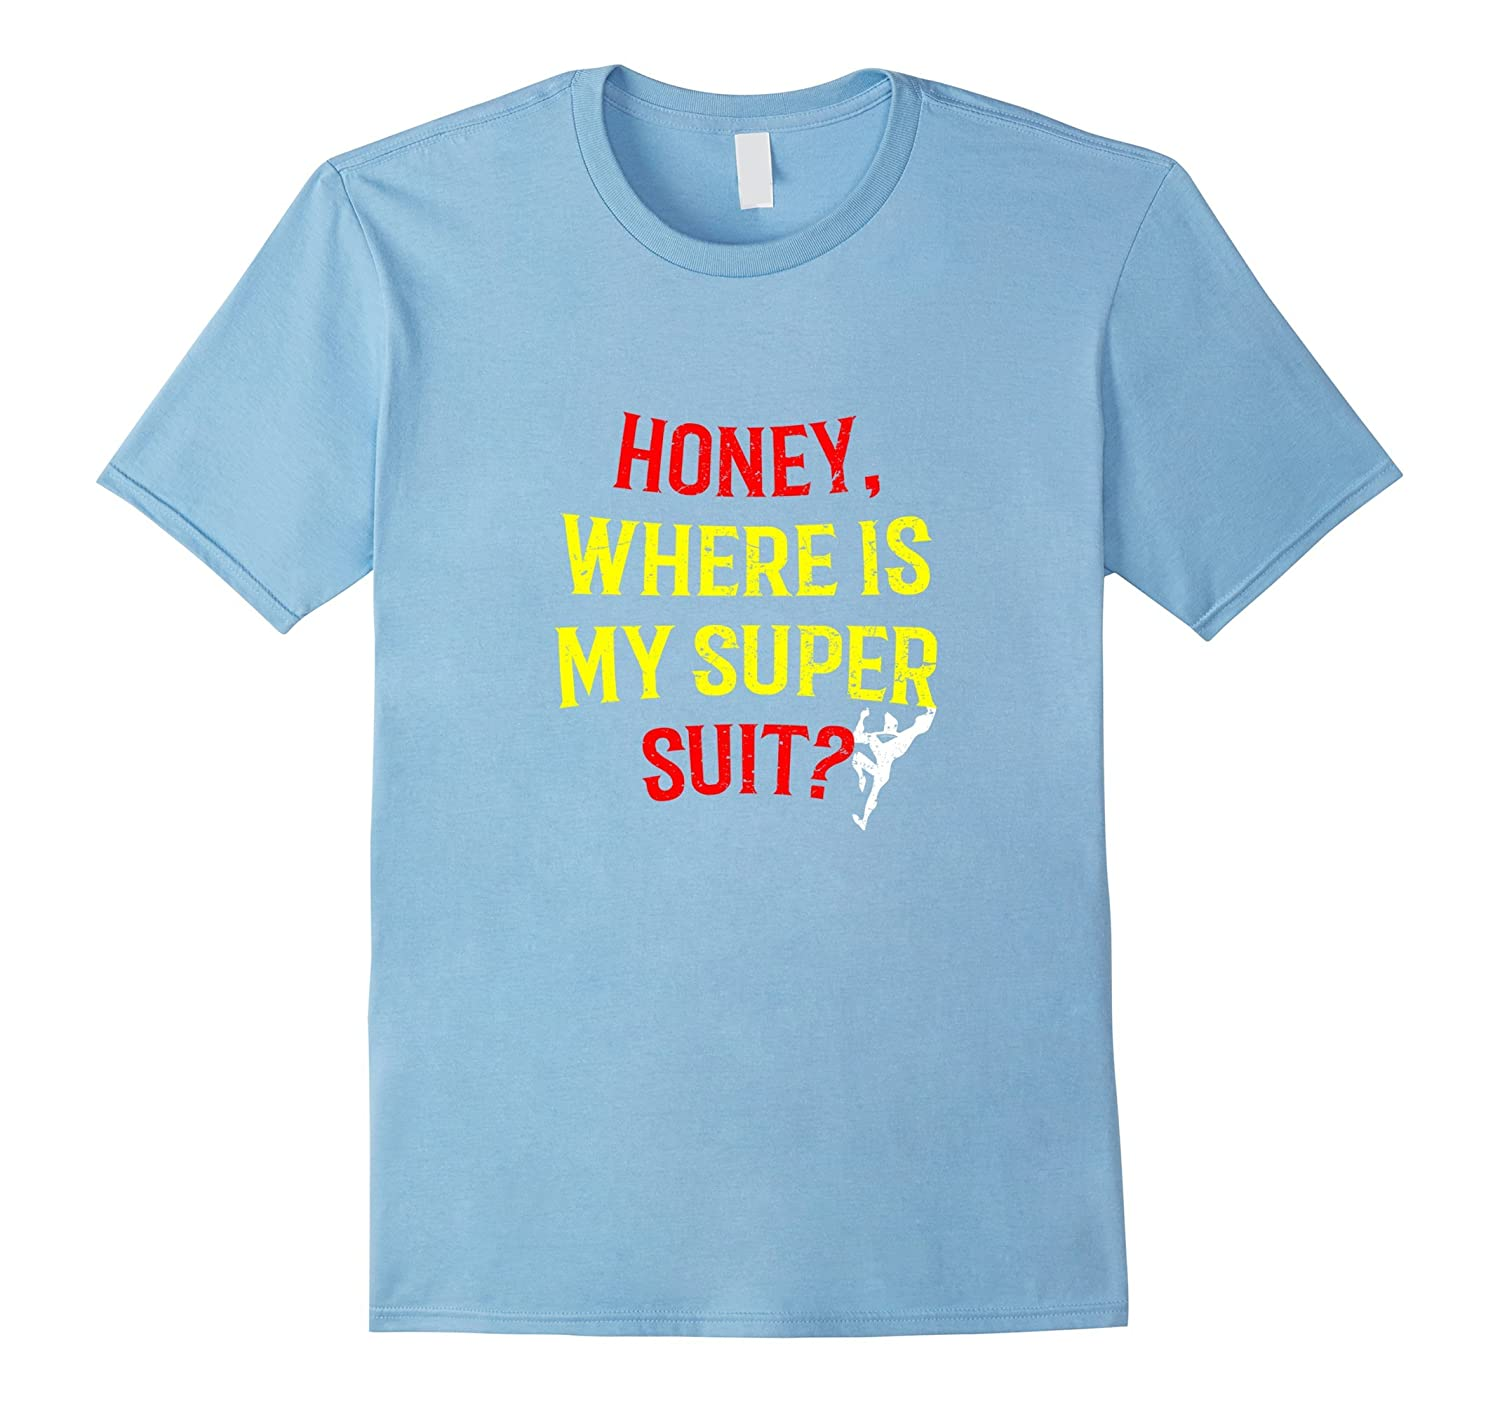 Honey, Where Is My Super Suit T-Shirt For Husband From Wife